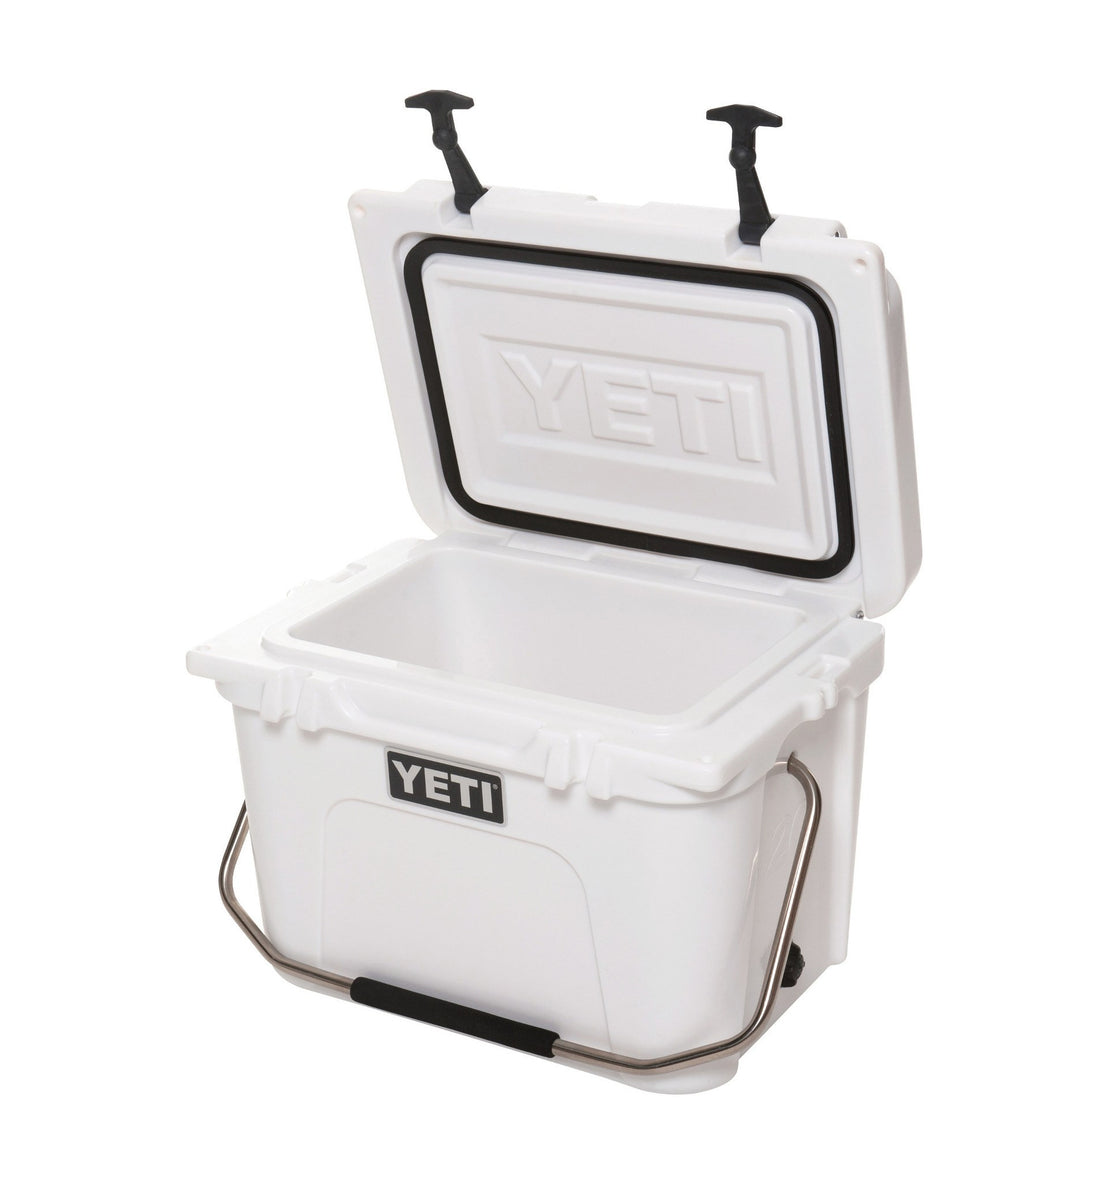 Yeti Roadie - Camping: Coolers - Iron and Resin